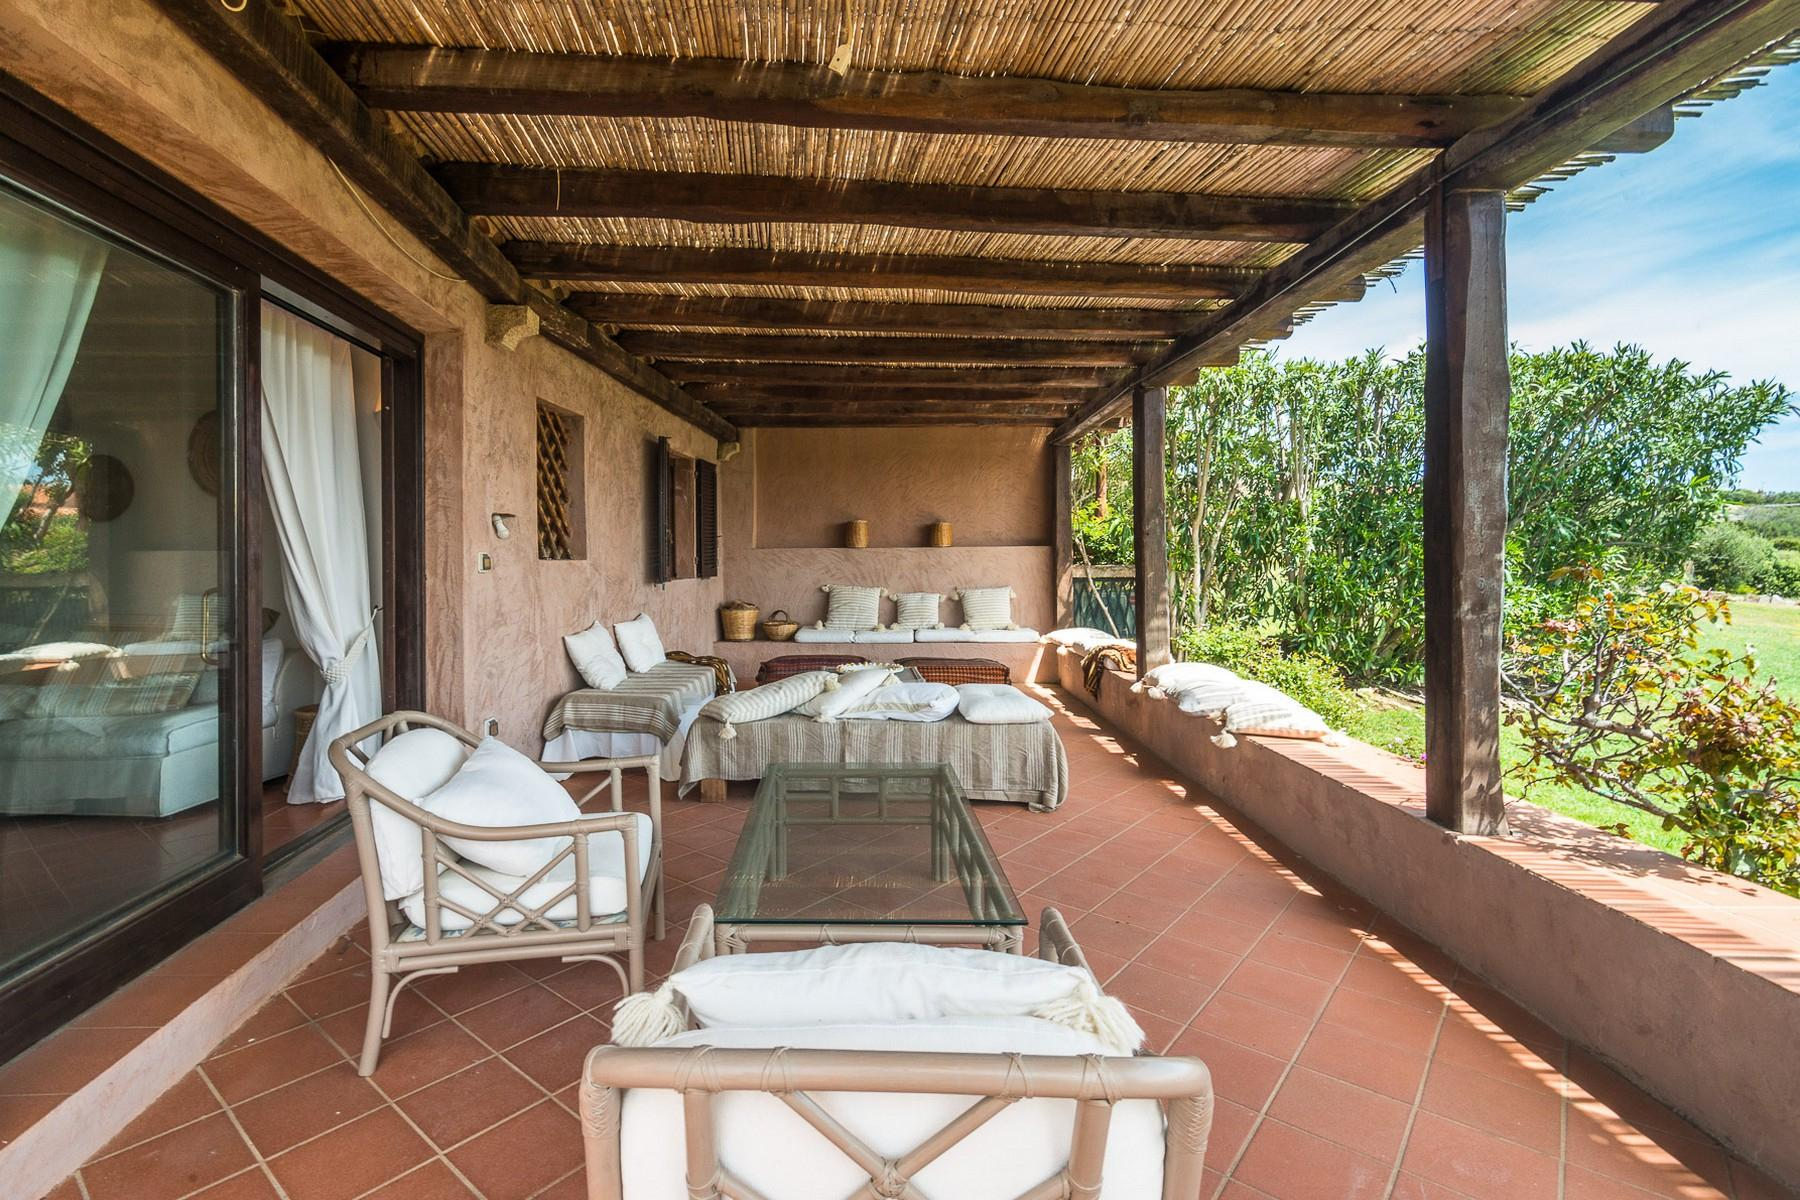 Porto Cervo Cala Granu Delightful Apartment a few steps from the beach - 2